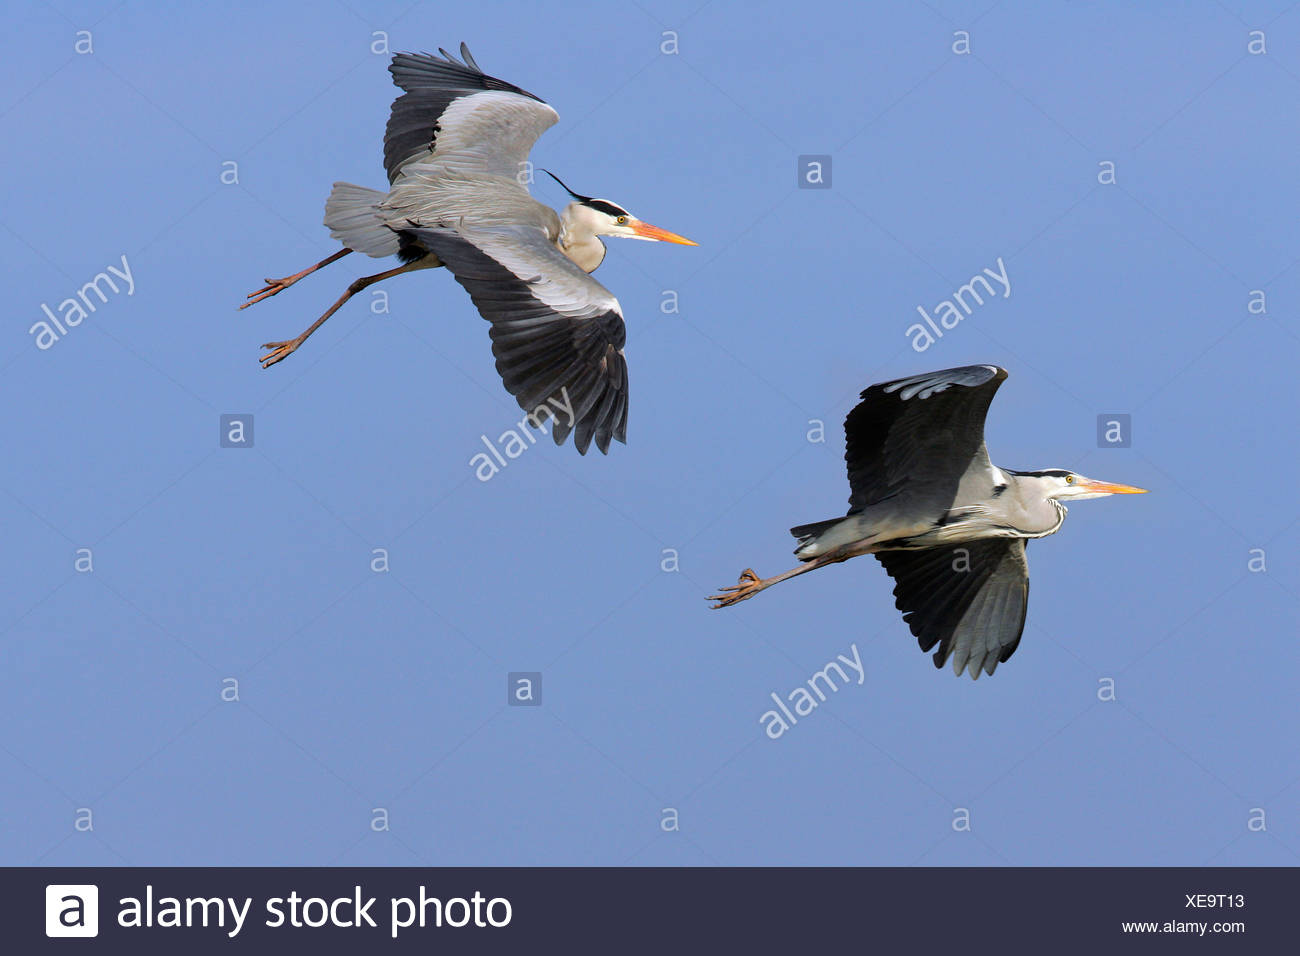 Couple of flying grey herons - gray herons - european common herons (Ardea cinerea) Stock Photo